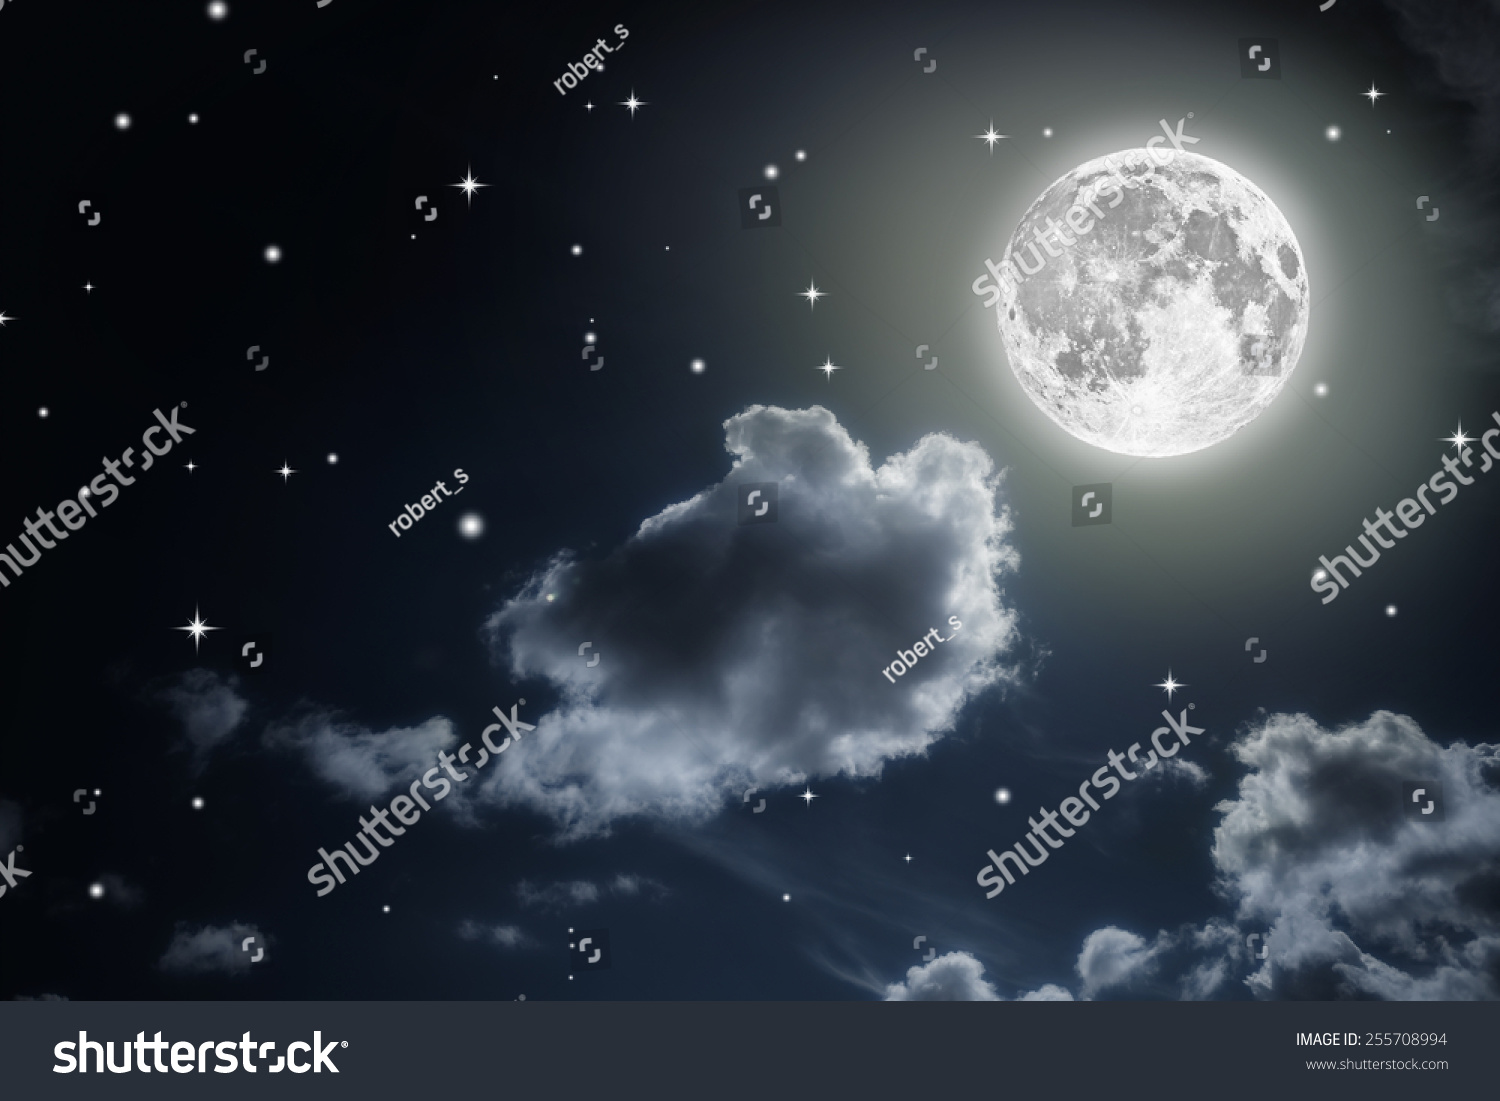 Full Moon In The Sky With Stars | www.pixshark.com ...